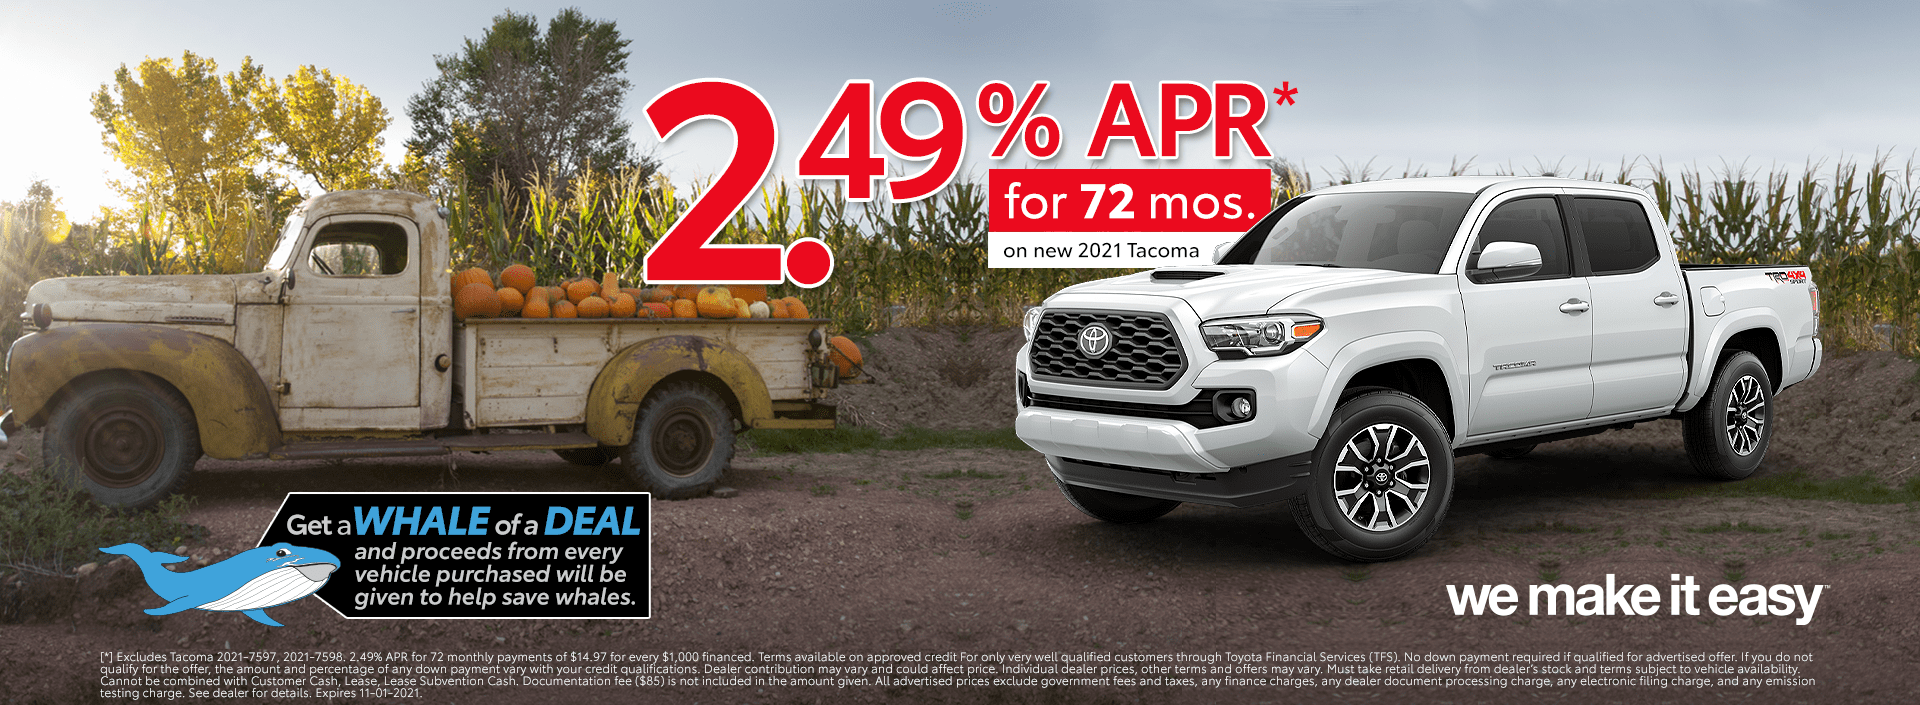 Toyota Tacoma Deals in Stock Los Angeles